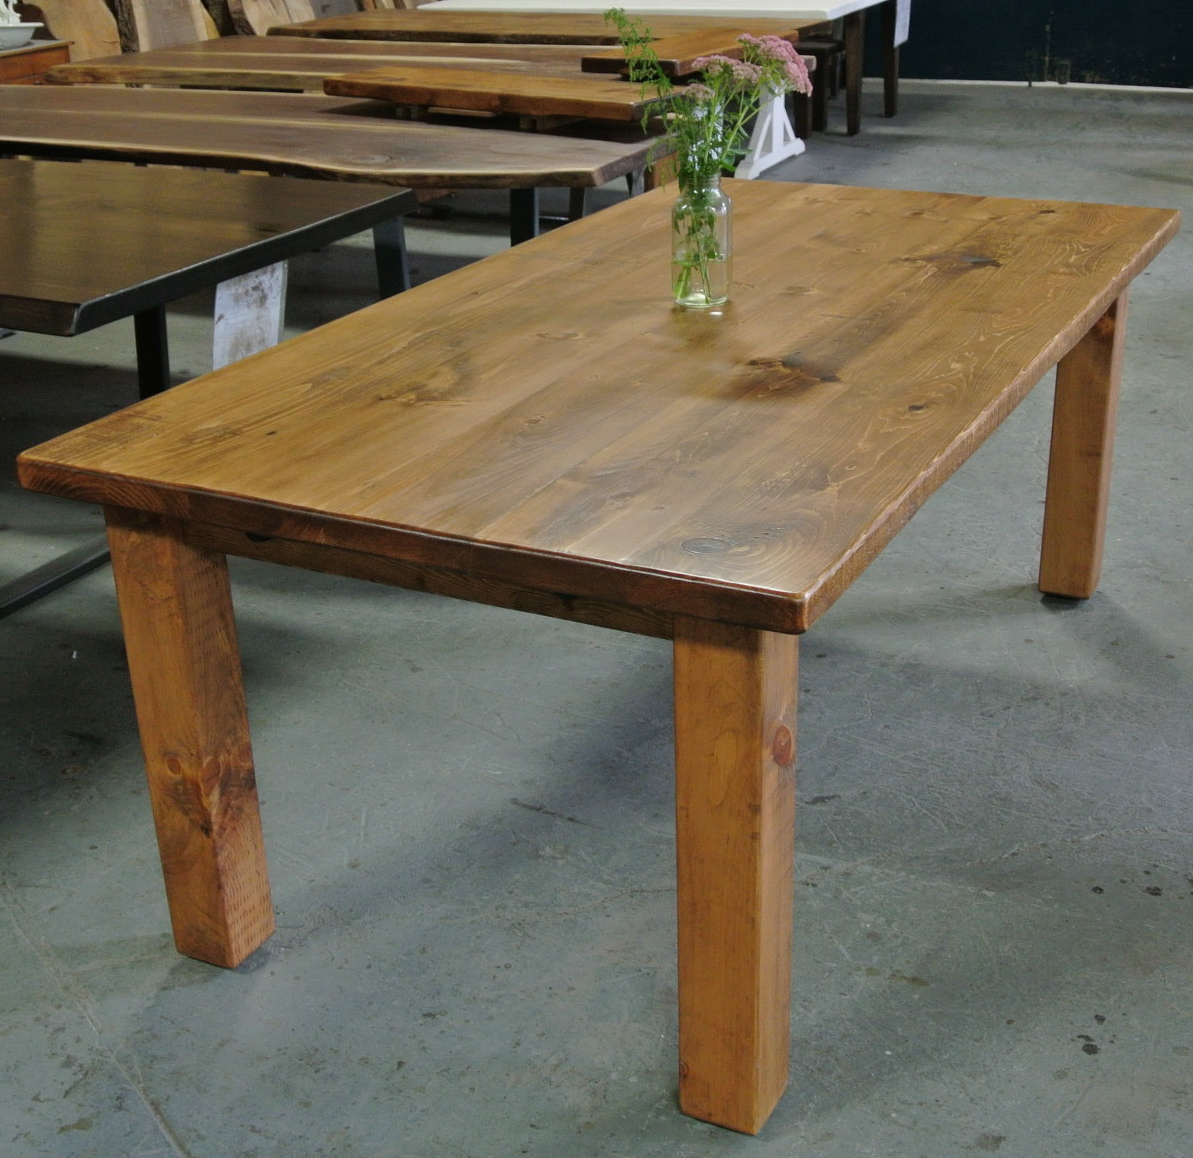 Farm Table with Square Legs. Pine with Light Early American Stain.